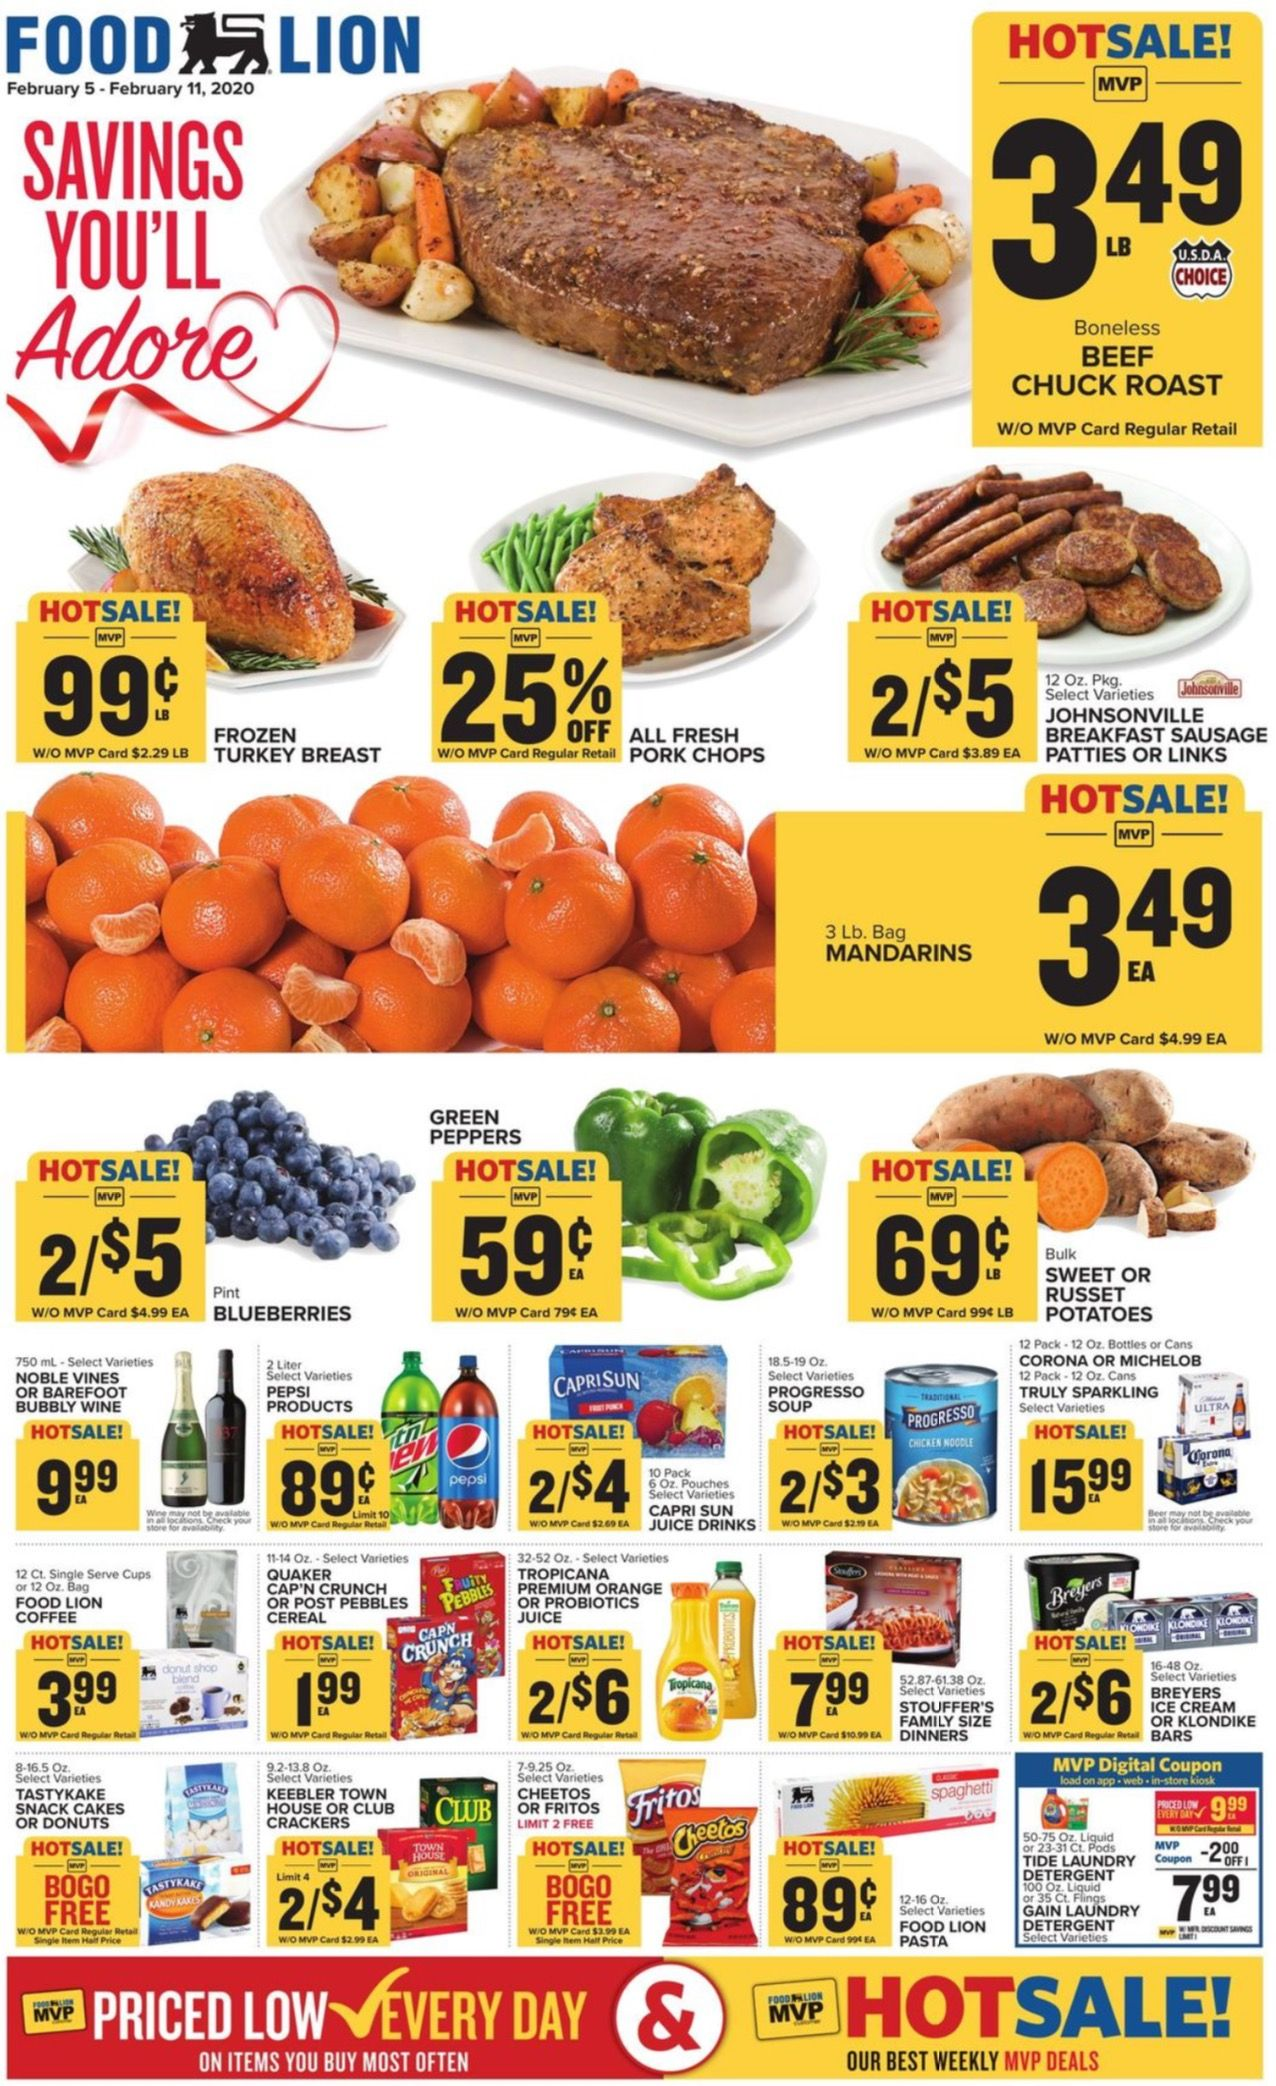 Food Lion Weekly 3 25 20 3 31 20 Ad Preview In 2020 Food Almond Pancakes Beef Chuck Roast